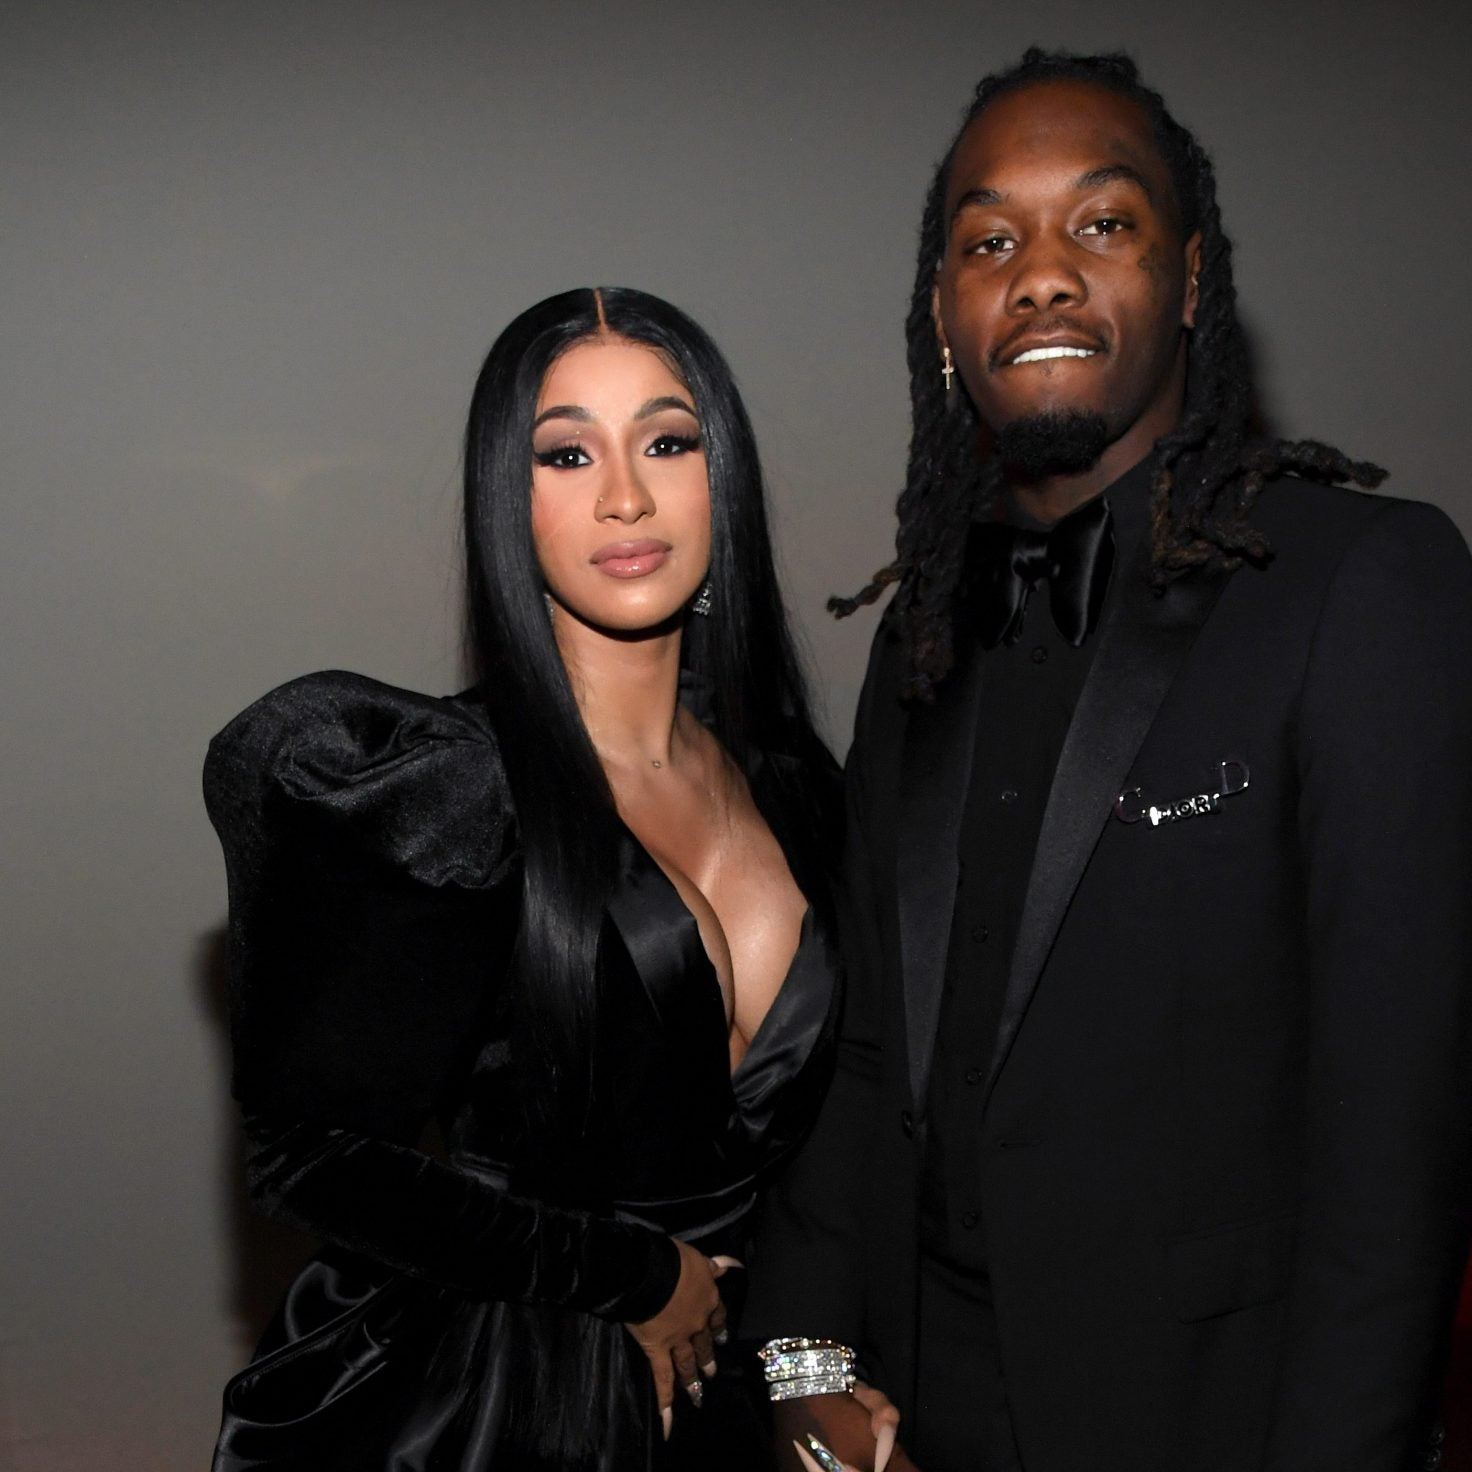 Cardi B And Offset Take Us On A Tour Of Their New House